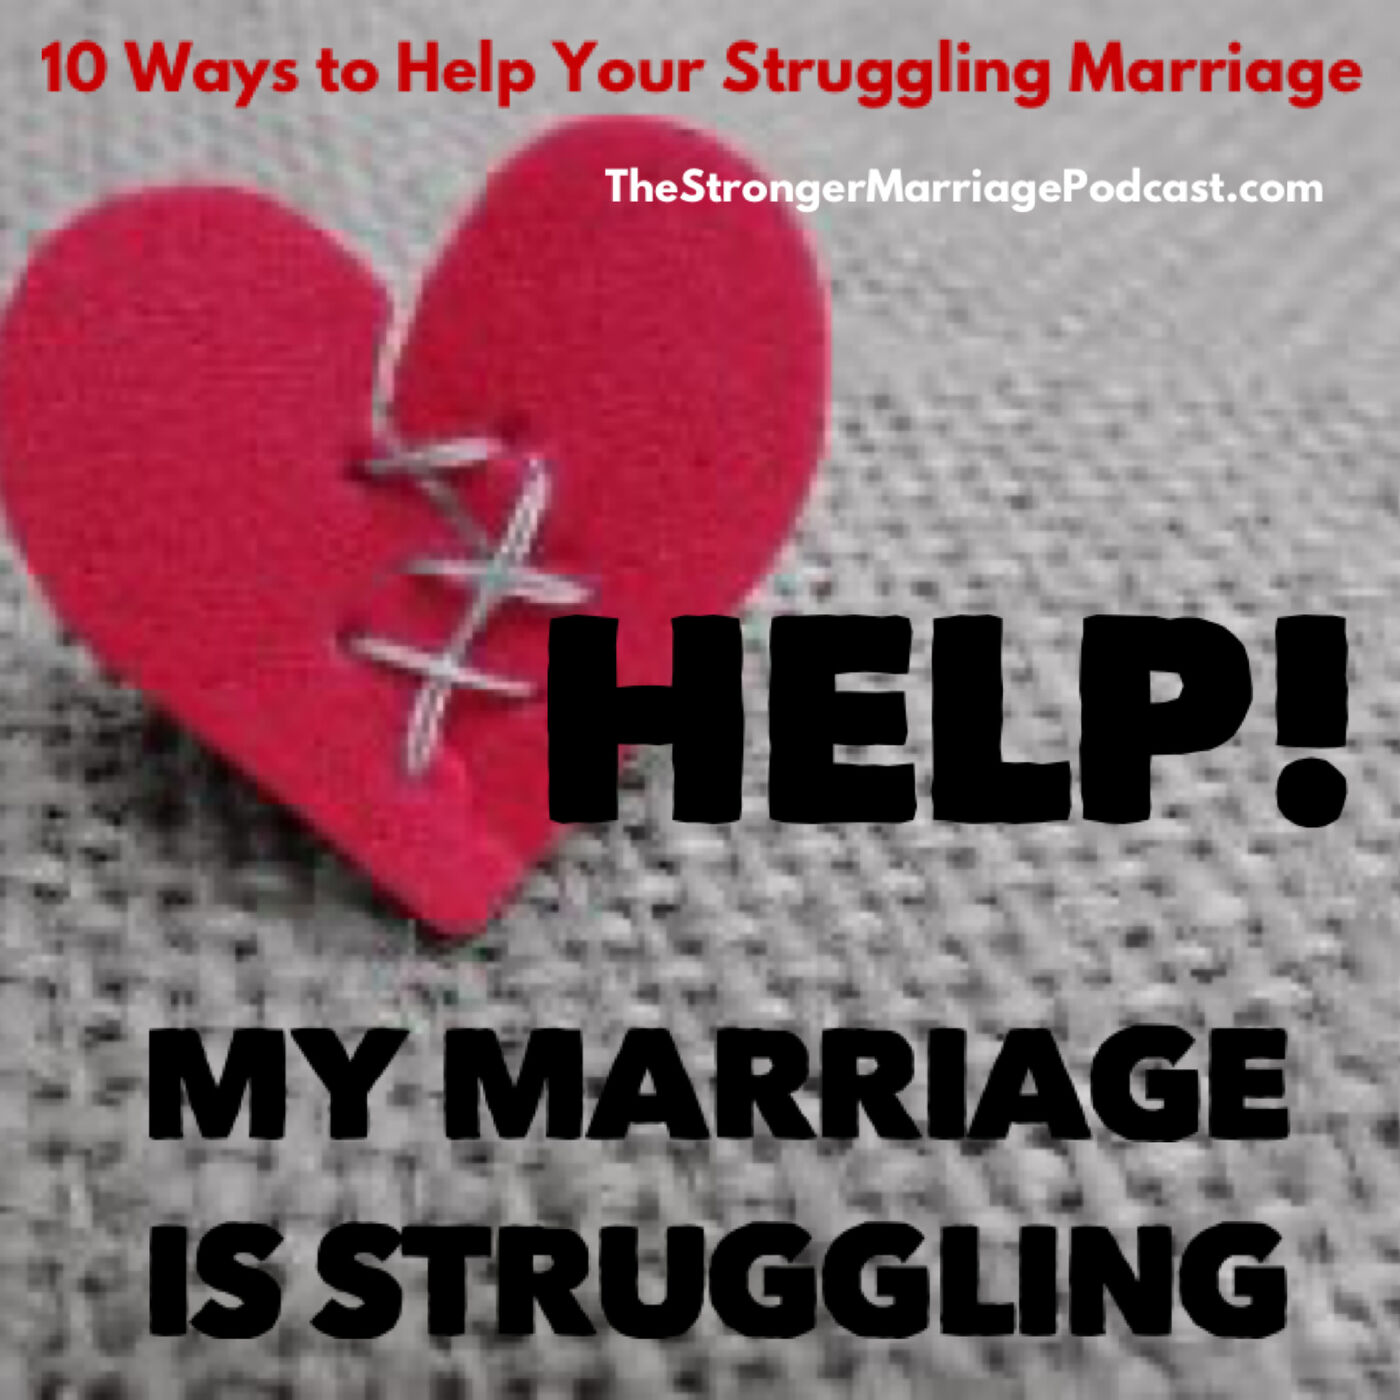 HELP: My Marriage Is Struggling